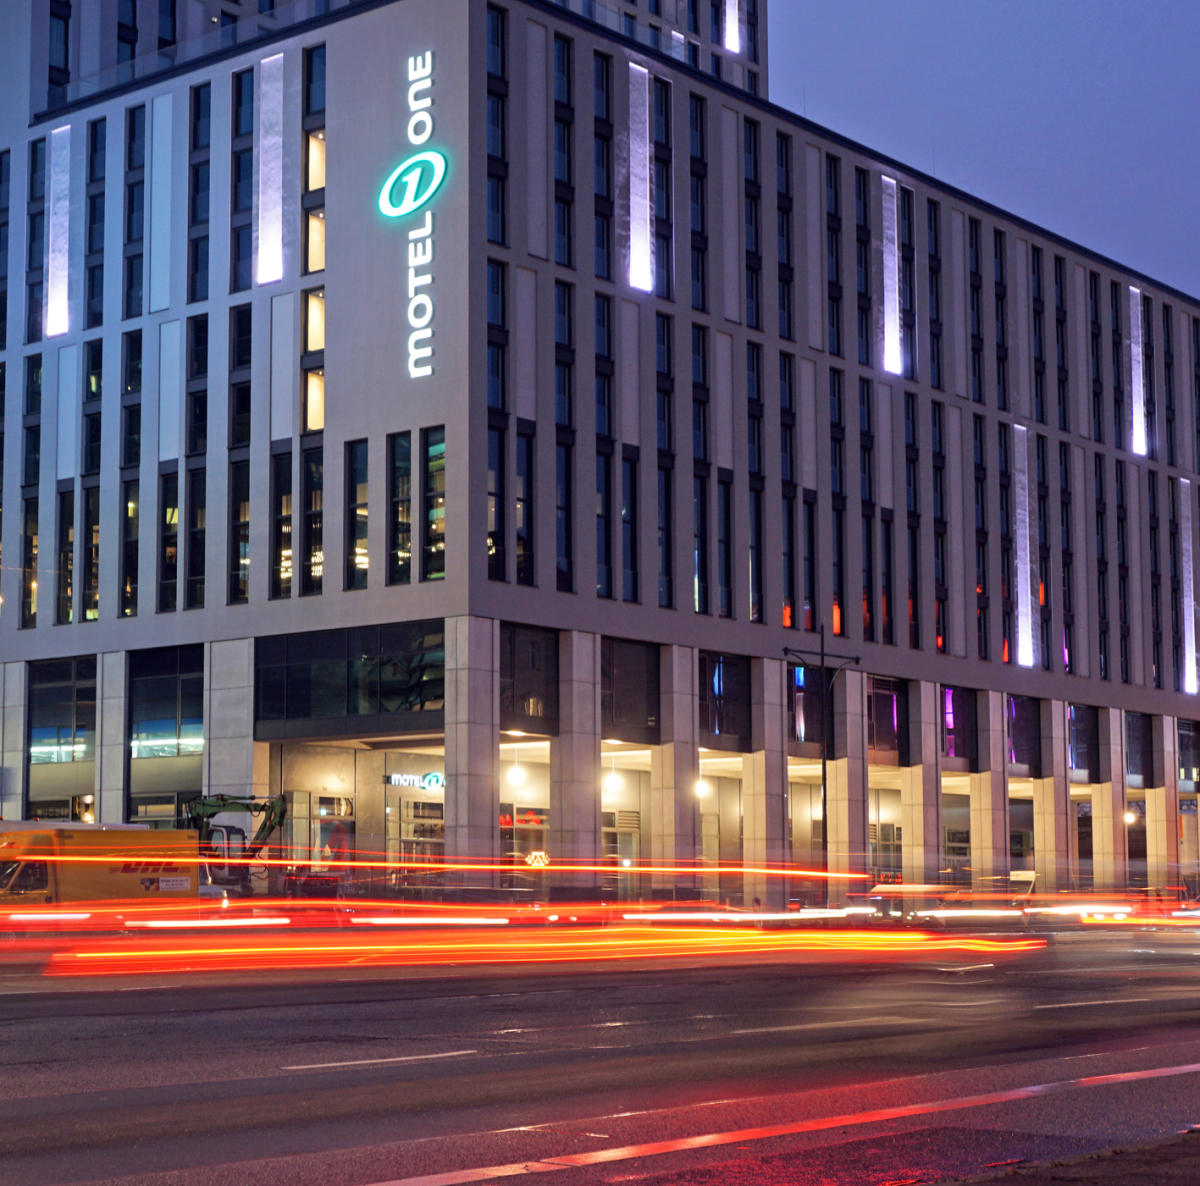 Glass Fiber Concrete Fa 231 Ade For Motel One In Berlin Concrete Plant Precast Technology